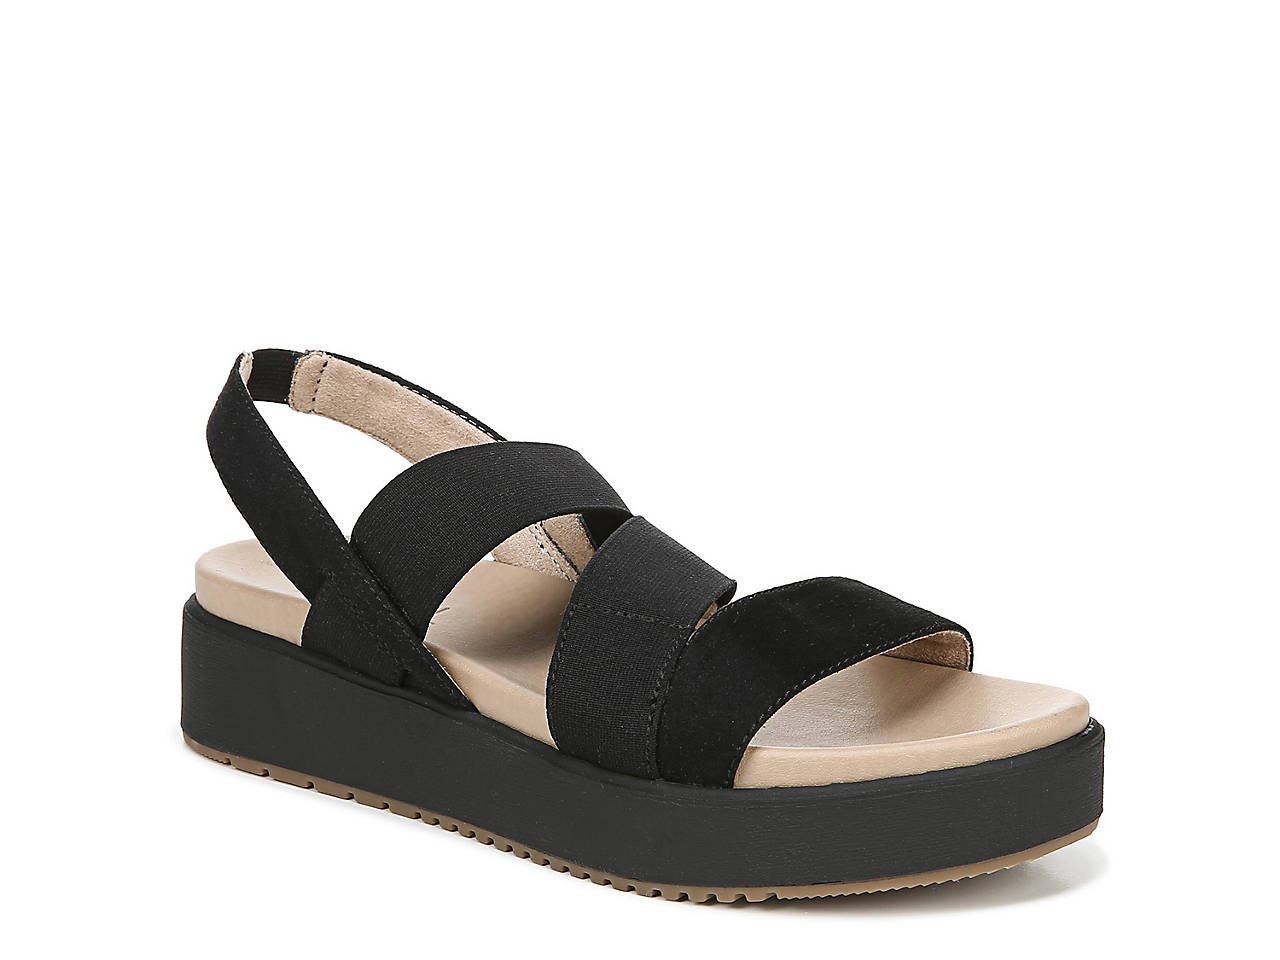 a5599295ac5f SOUL Naturalizer Holla Wedge Sandal Women s Shoes